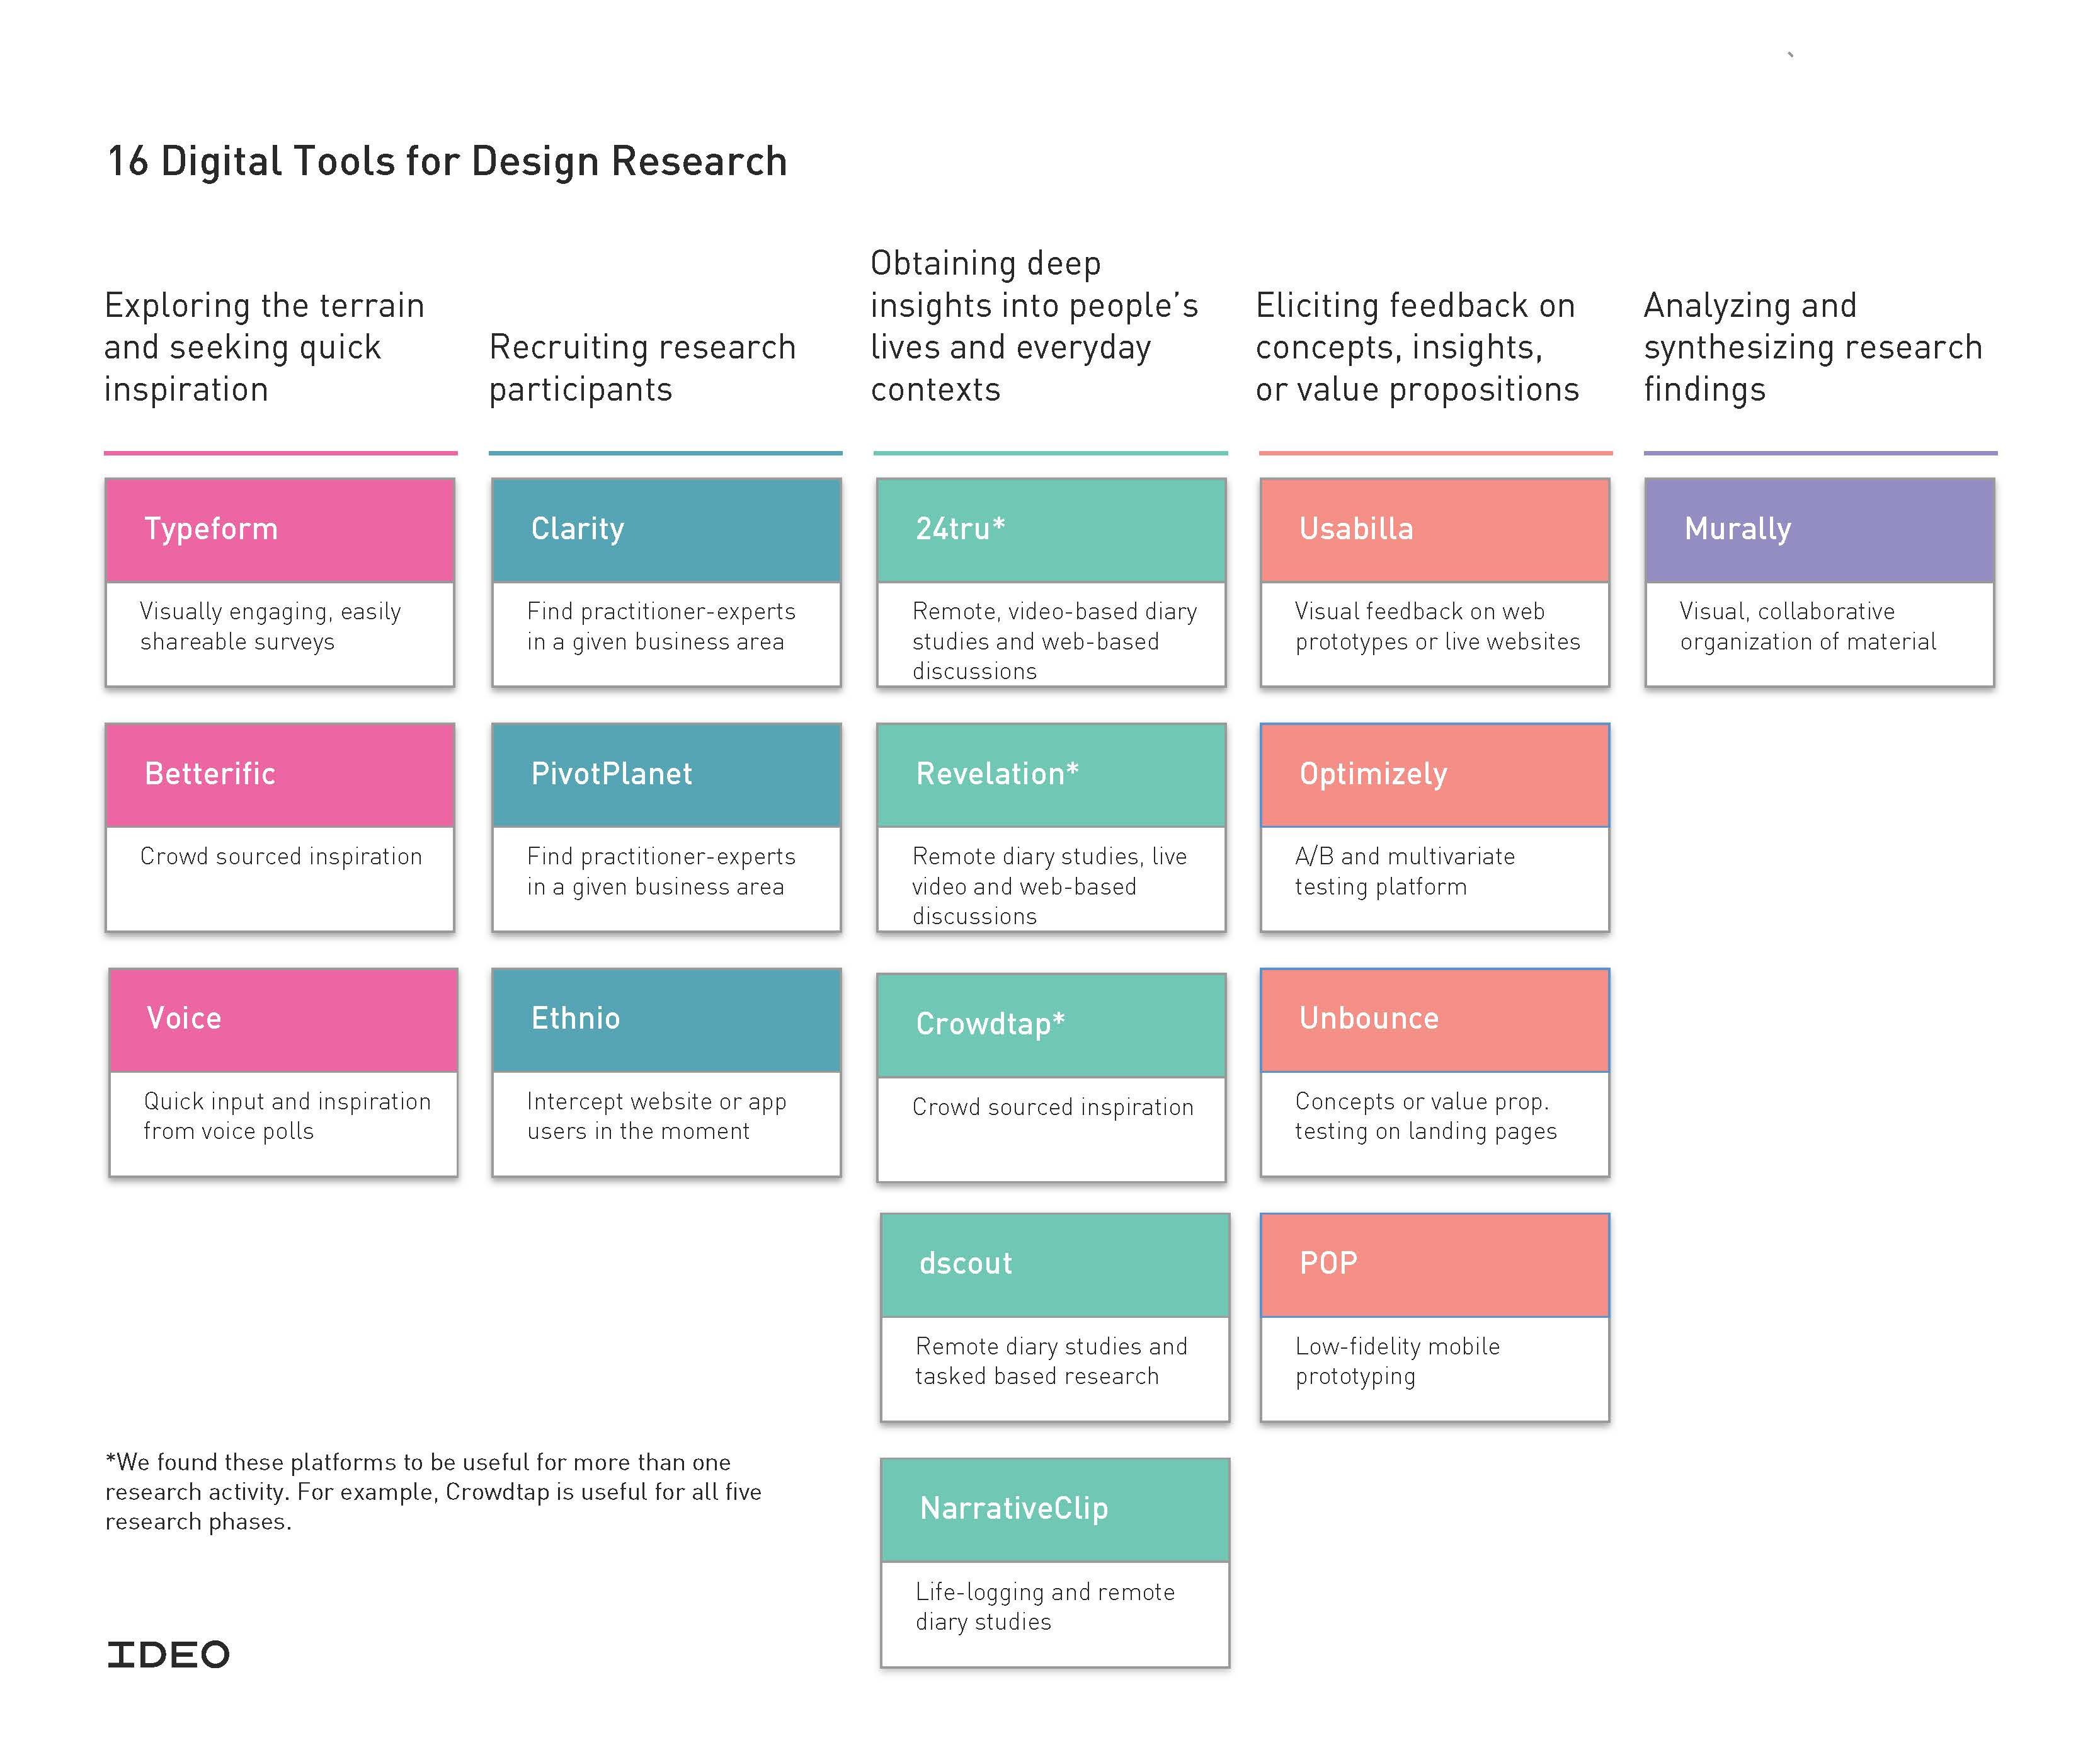 Digital Tools for Human-centered Research / IDEO | Design-led ...